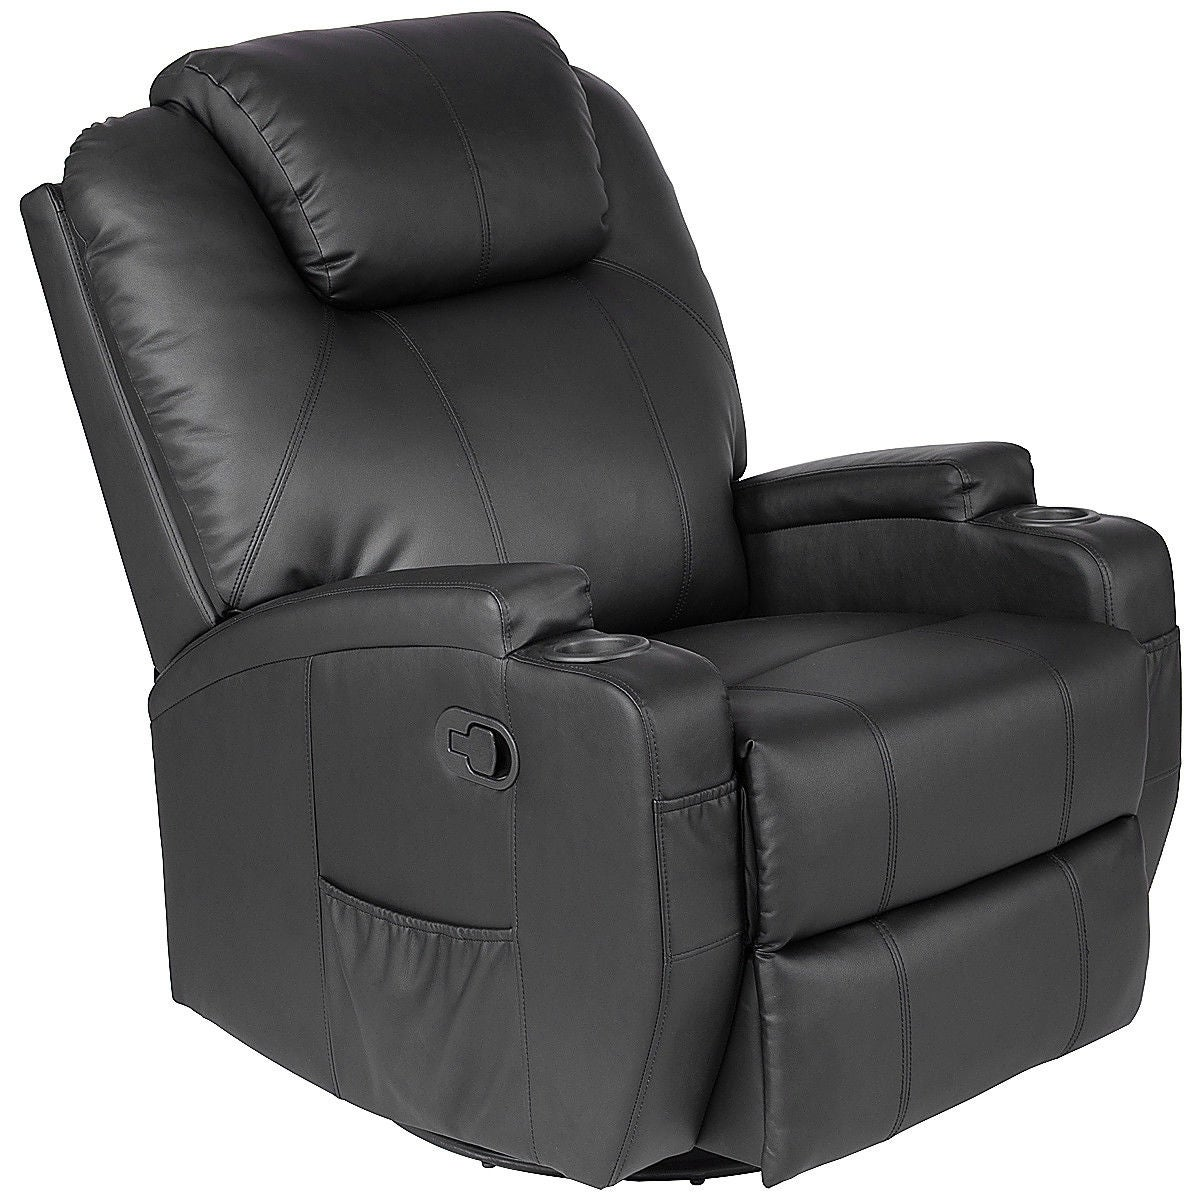 Costway Electric Mage Recliner Sofa Chair Heated 360 Degree Swivel With Cup Holder Black Free Shipping Today 22649847